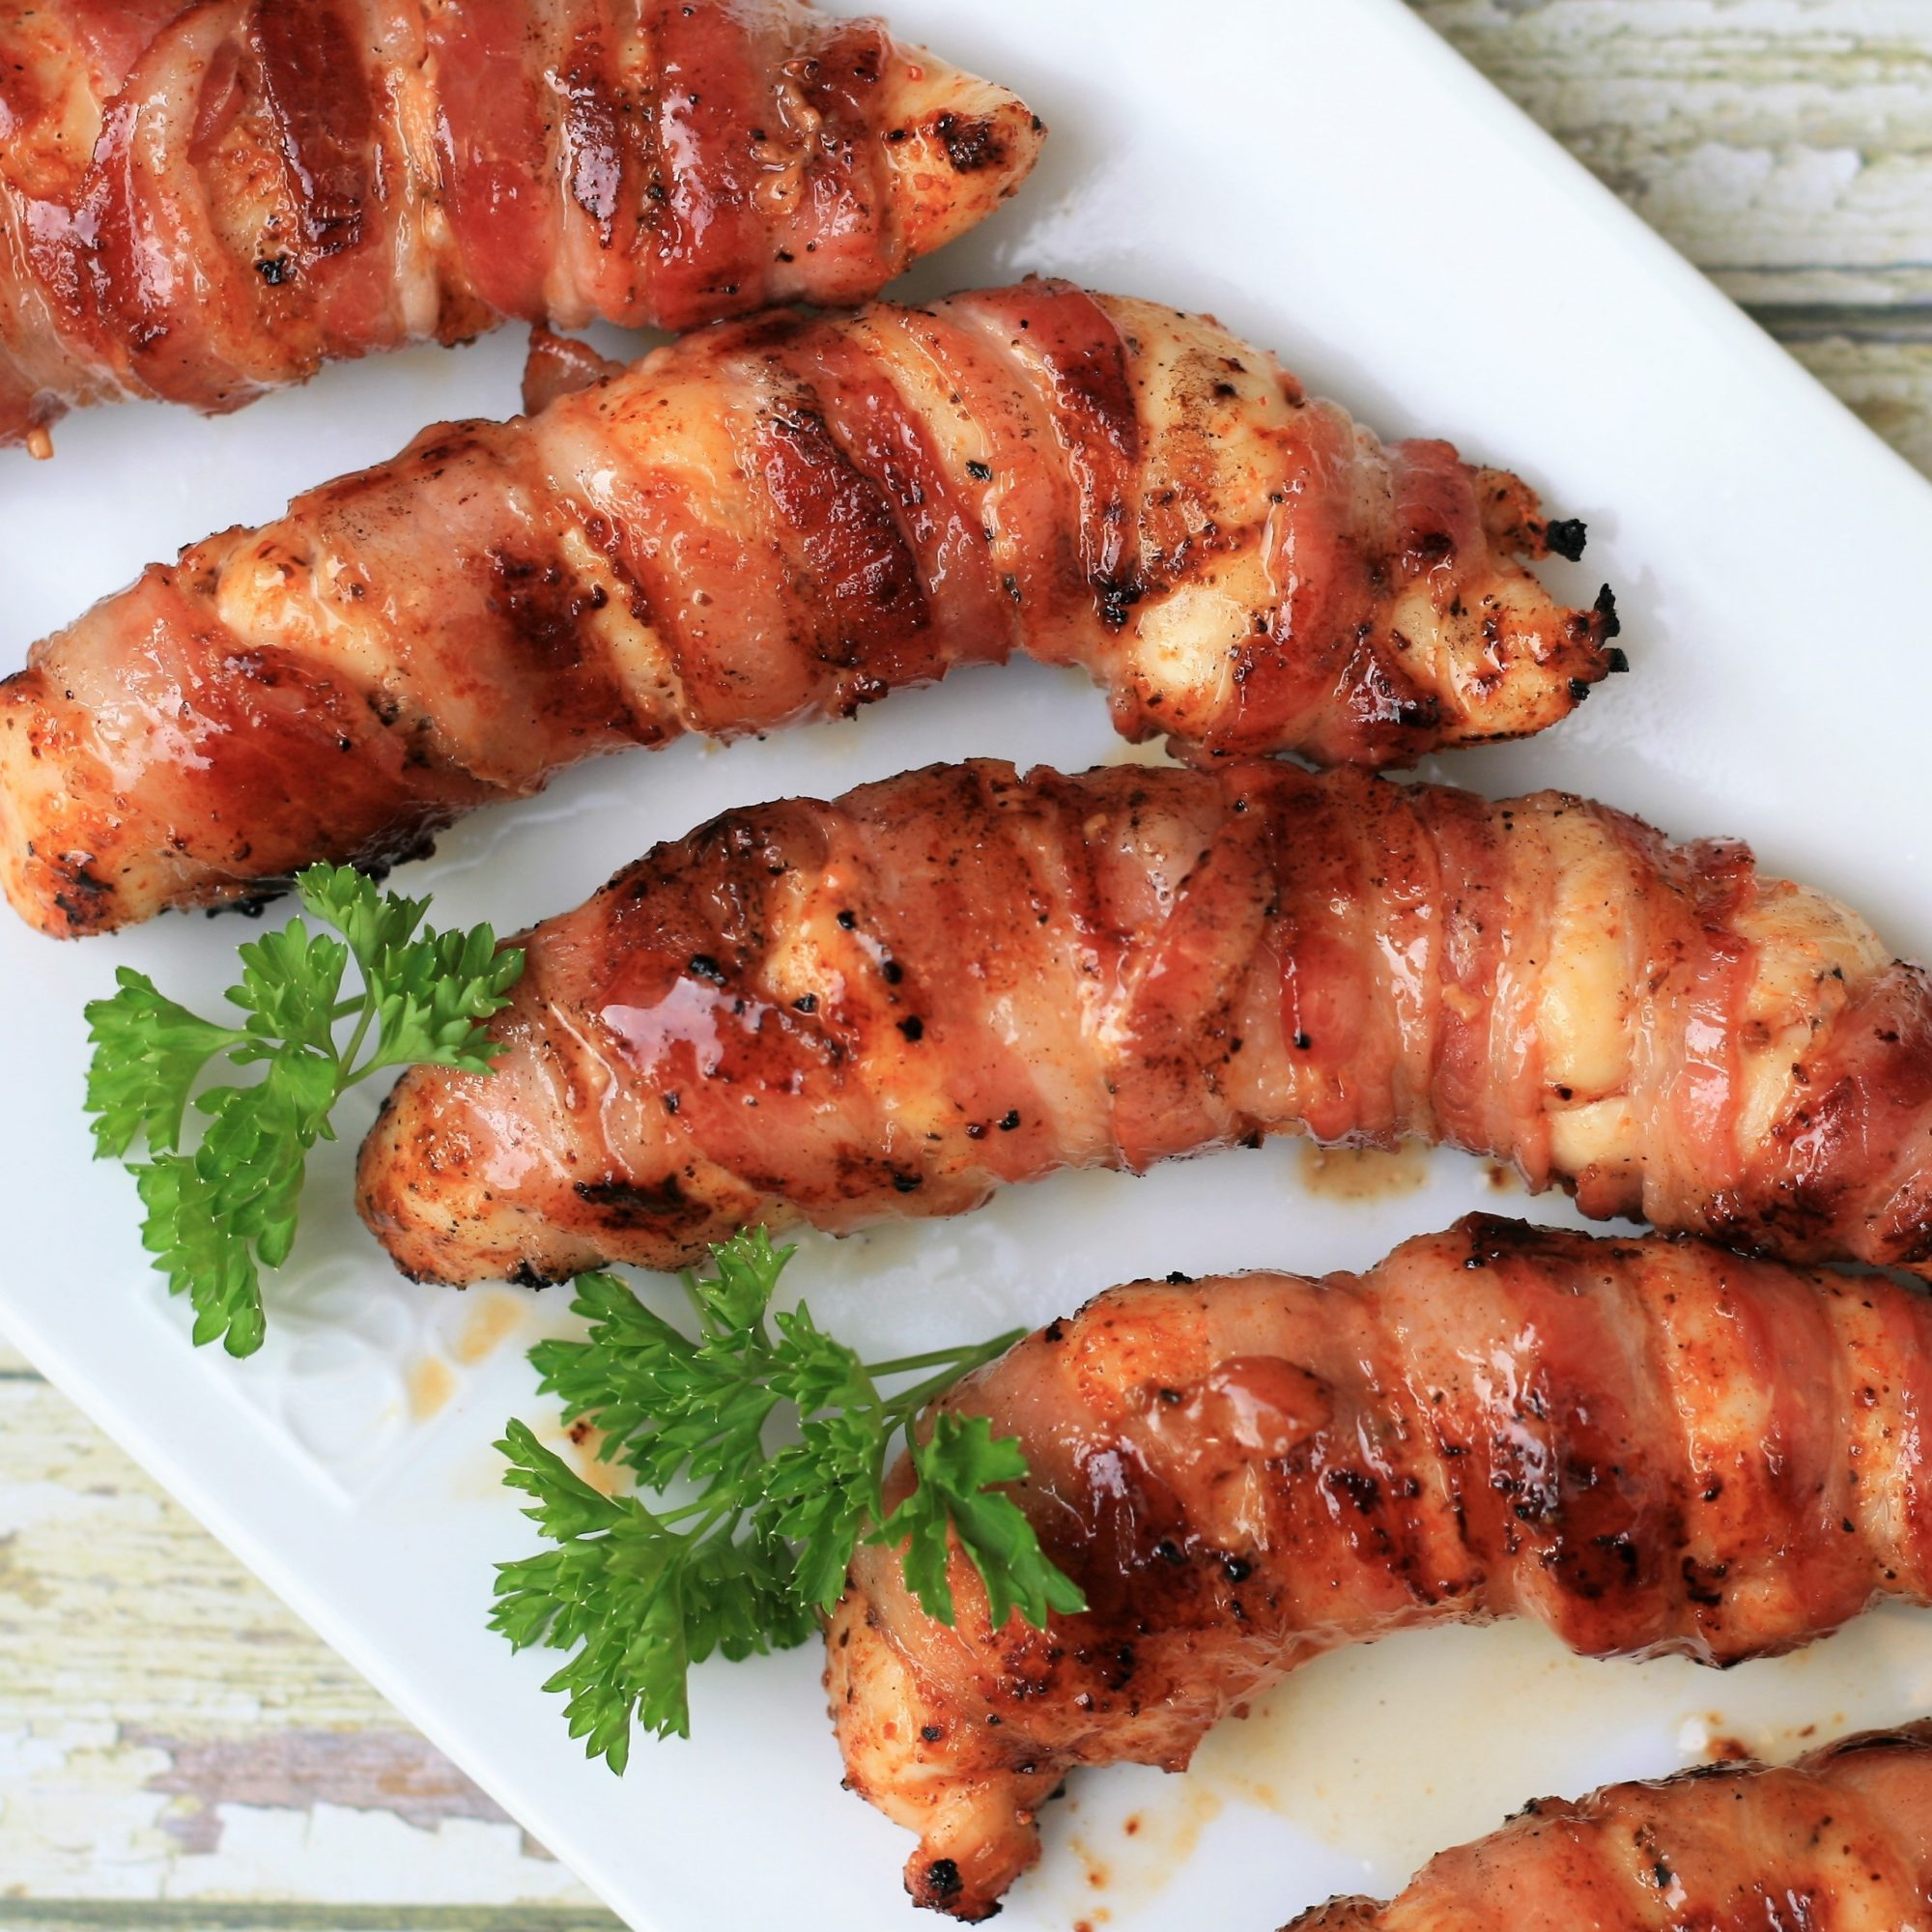 Grilled Bacon-Wrapped Chicken Tenders